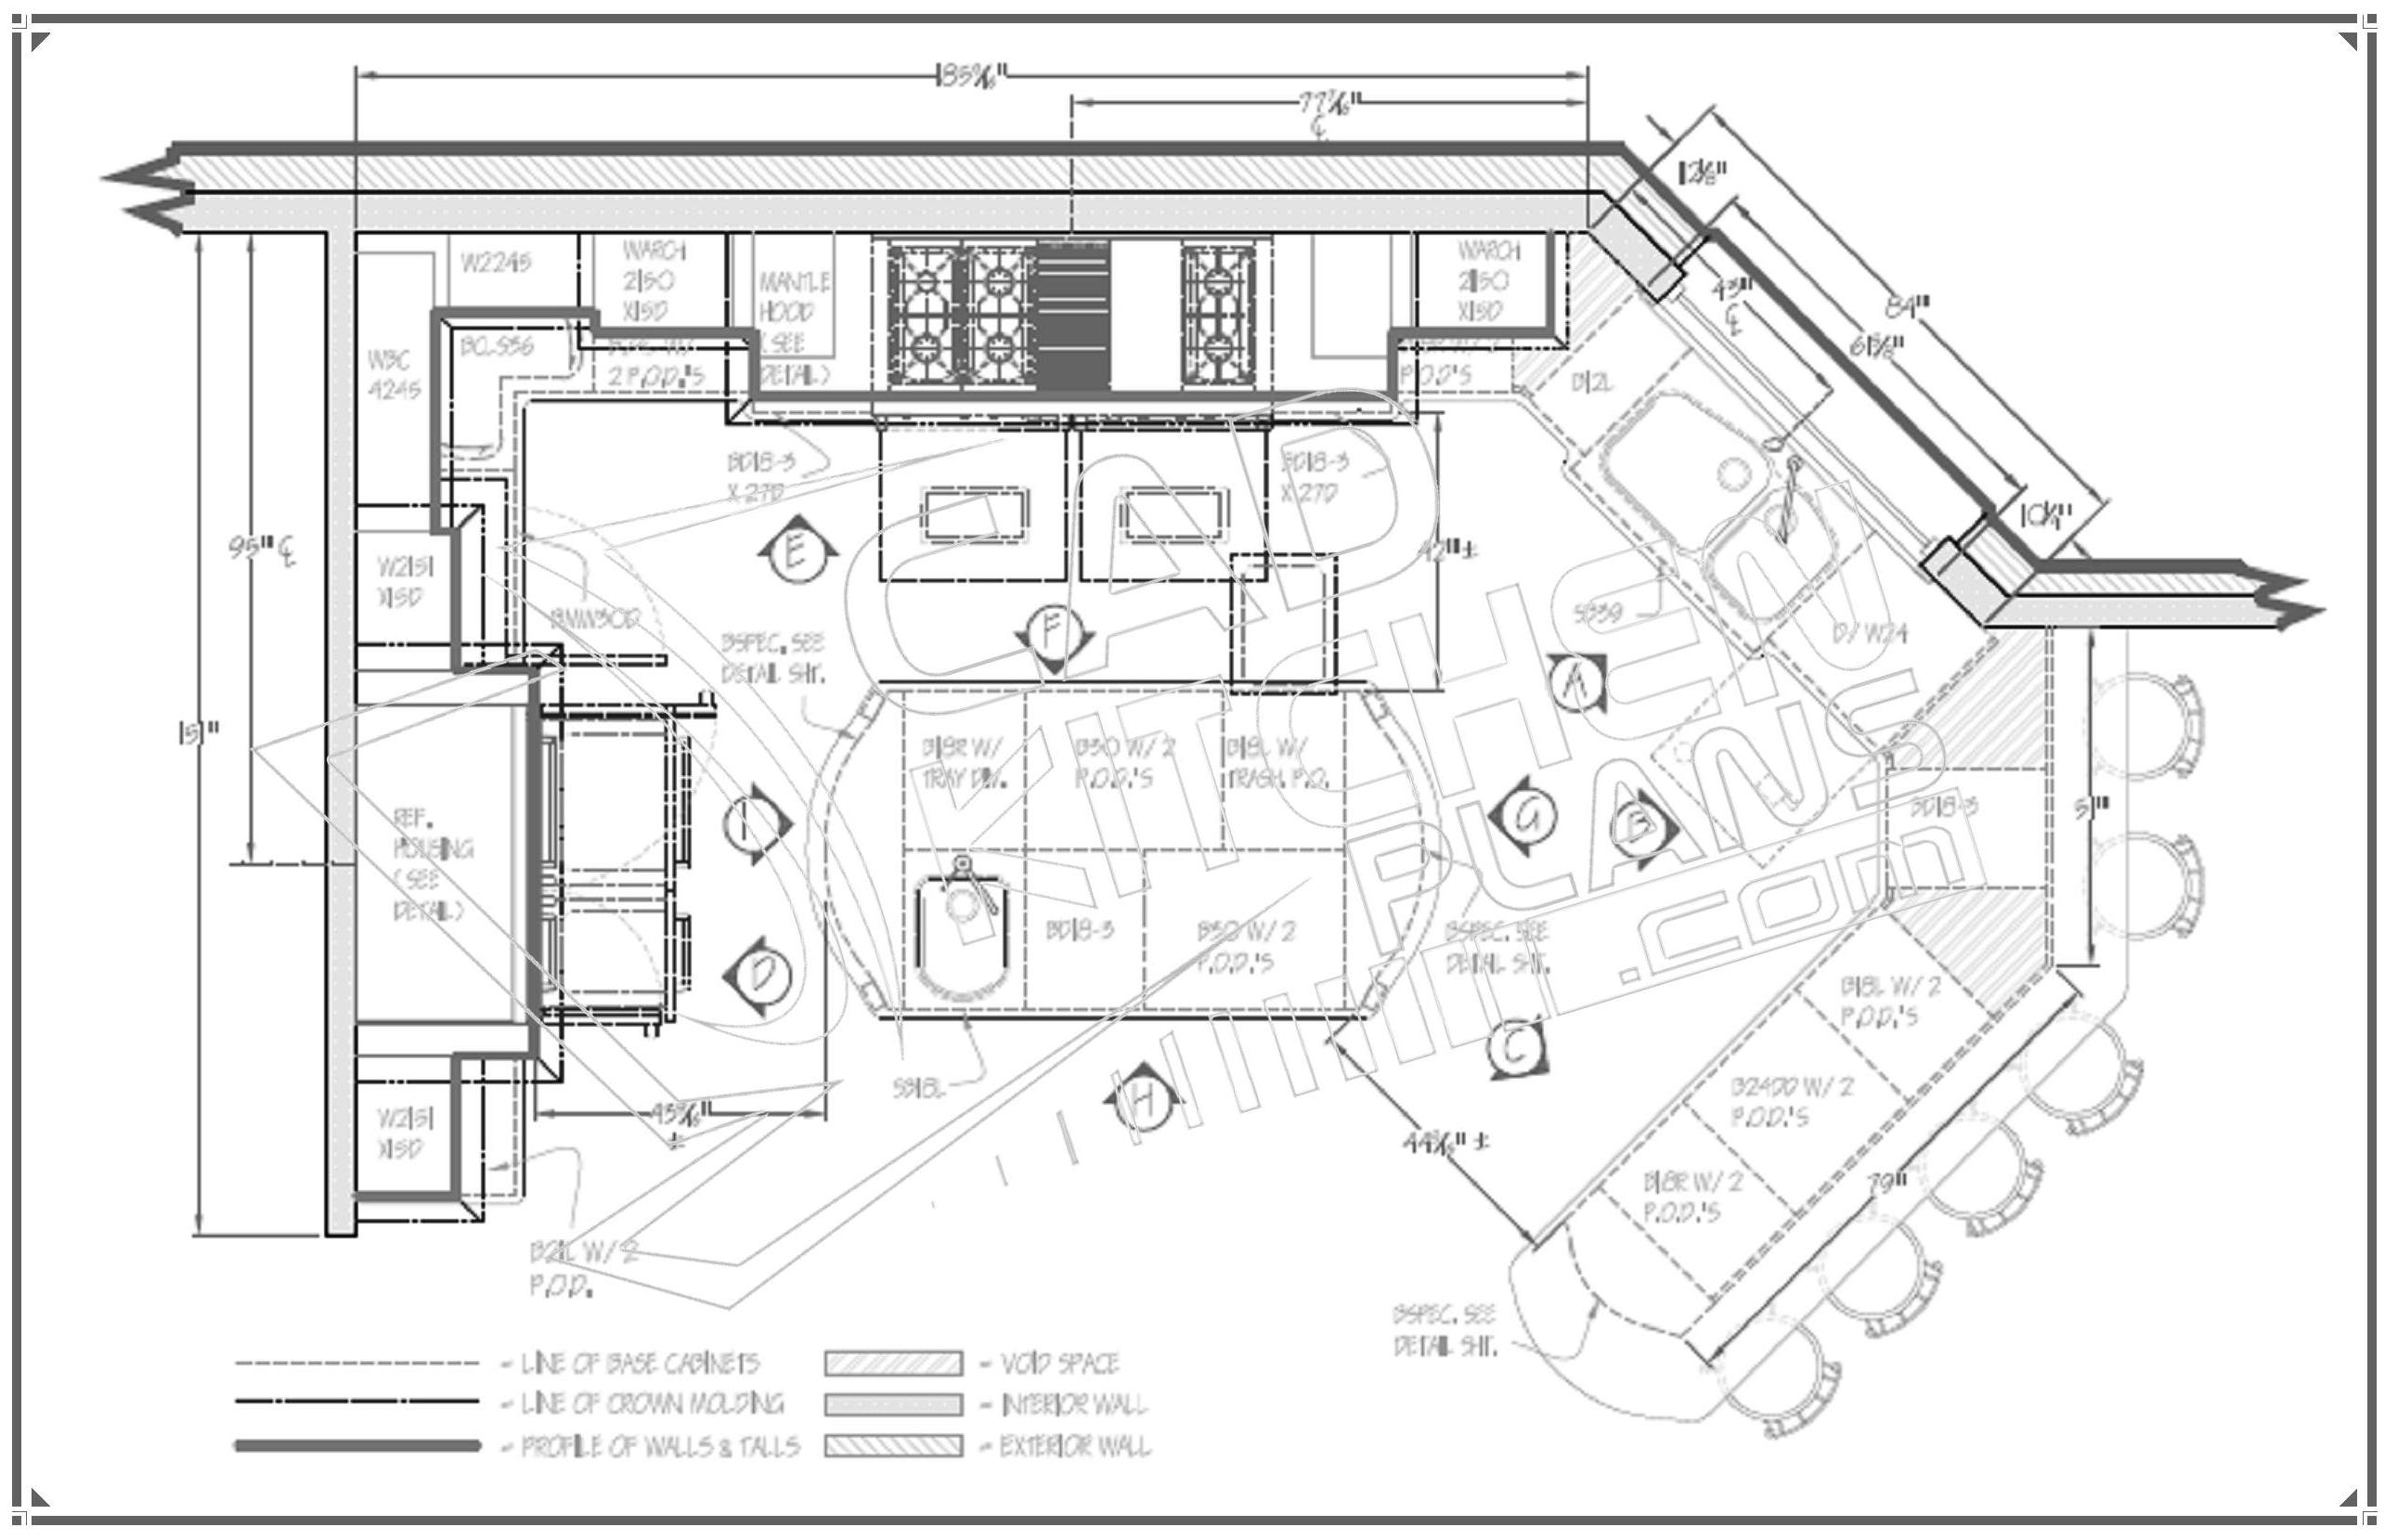 Restaurant kitchen plans design afreakatheart for Kitchen floor plan layout